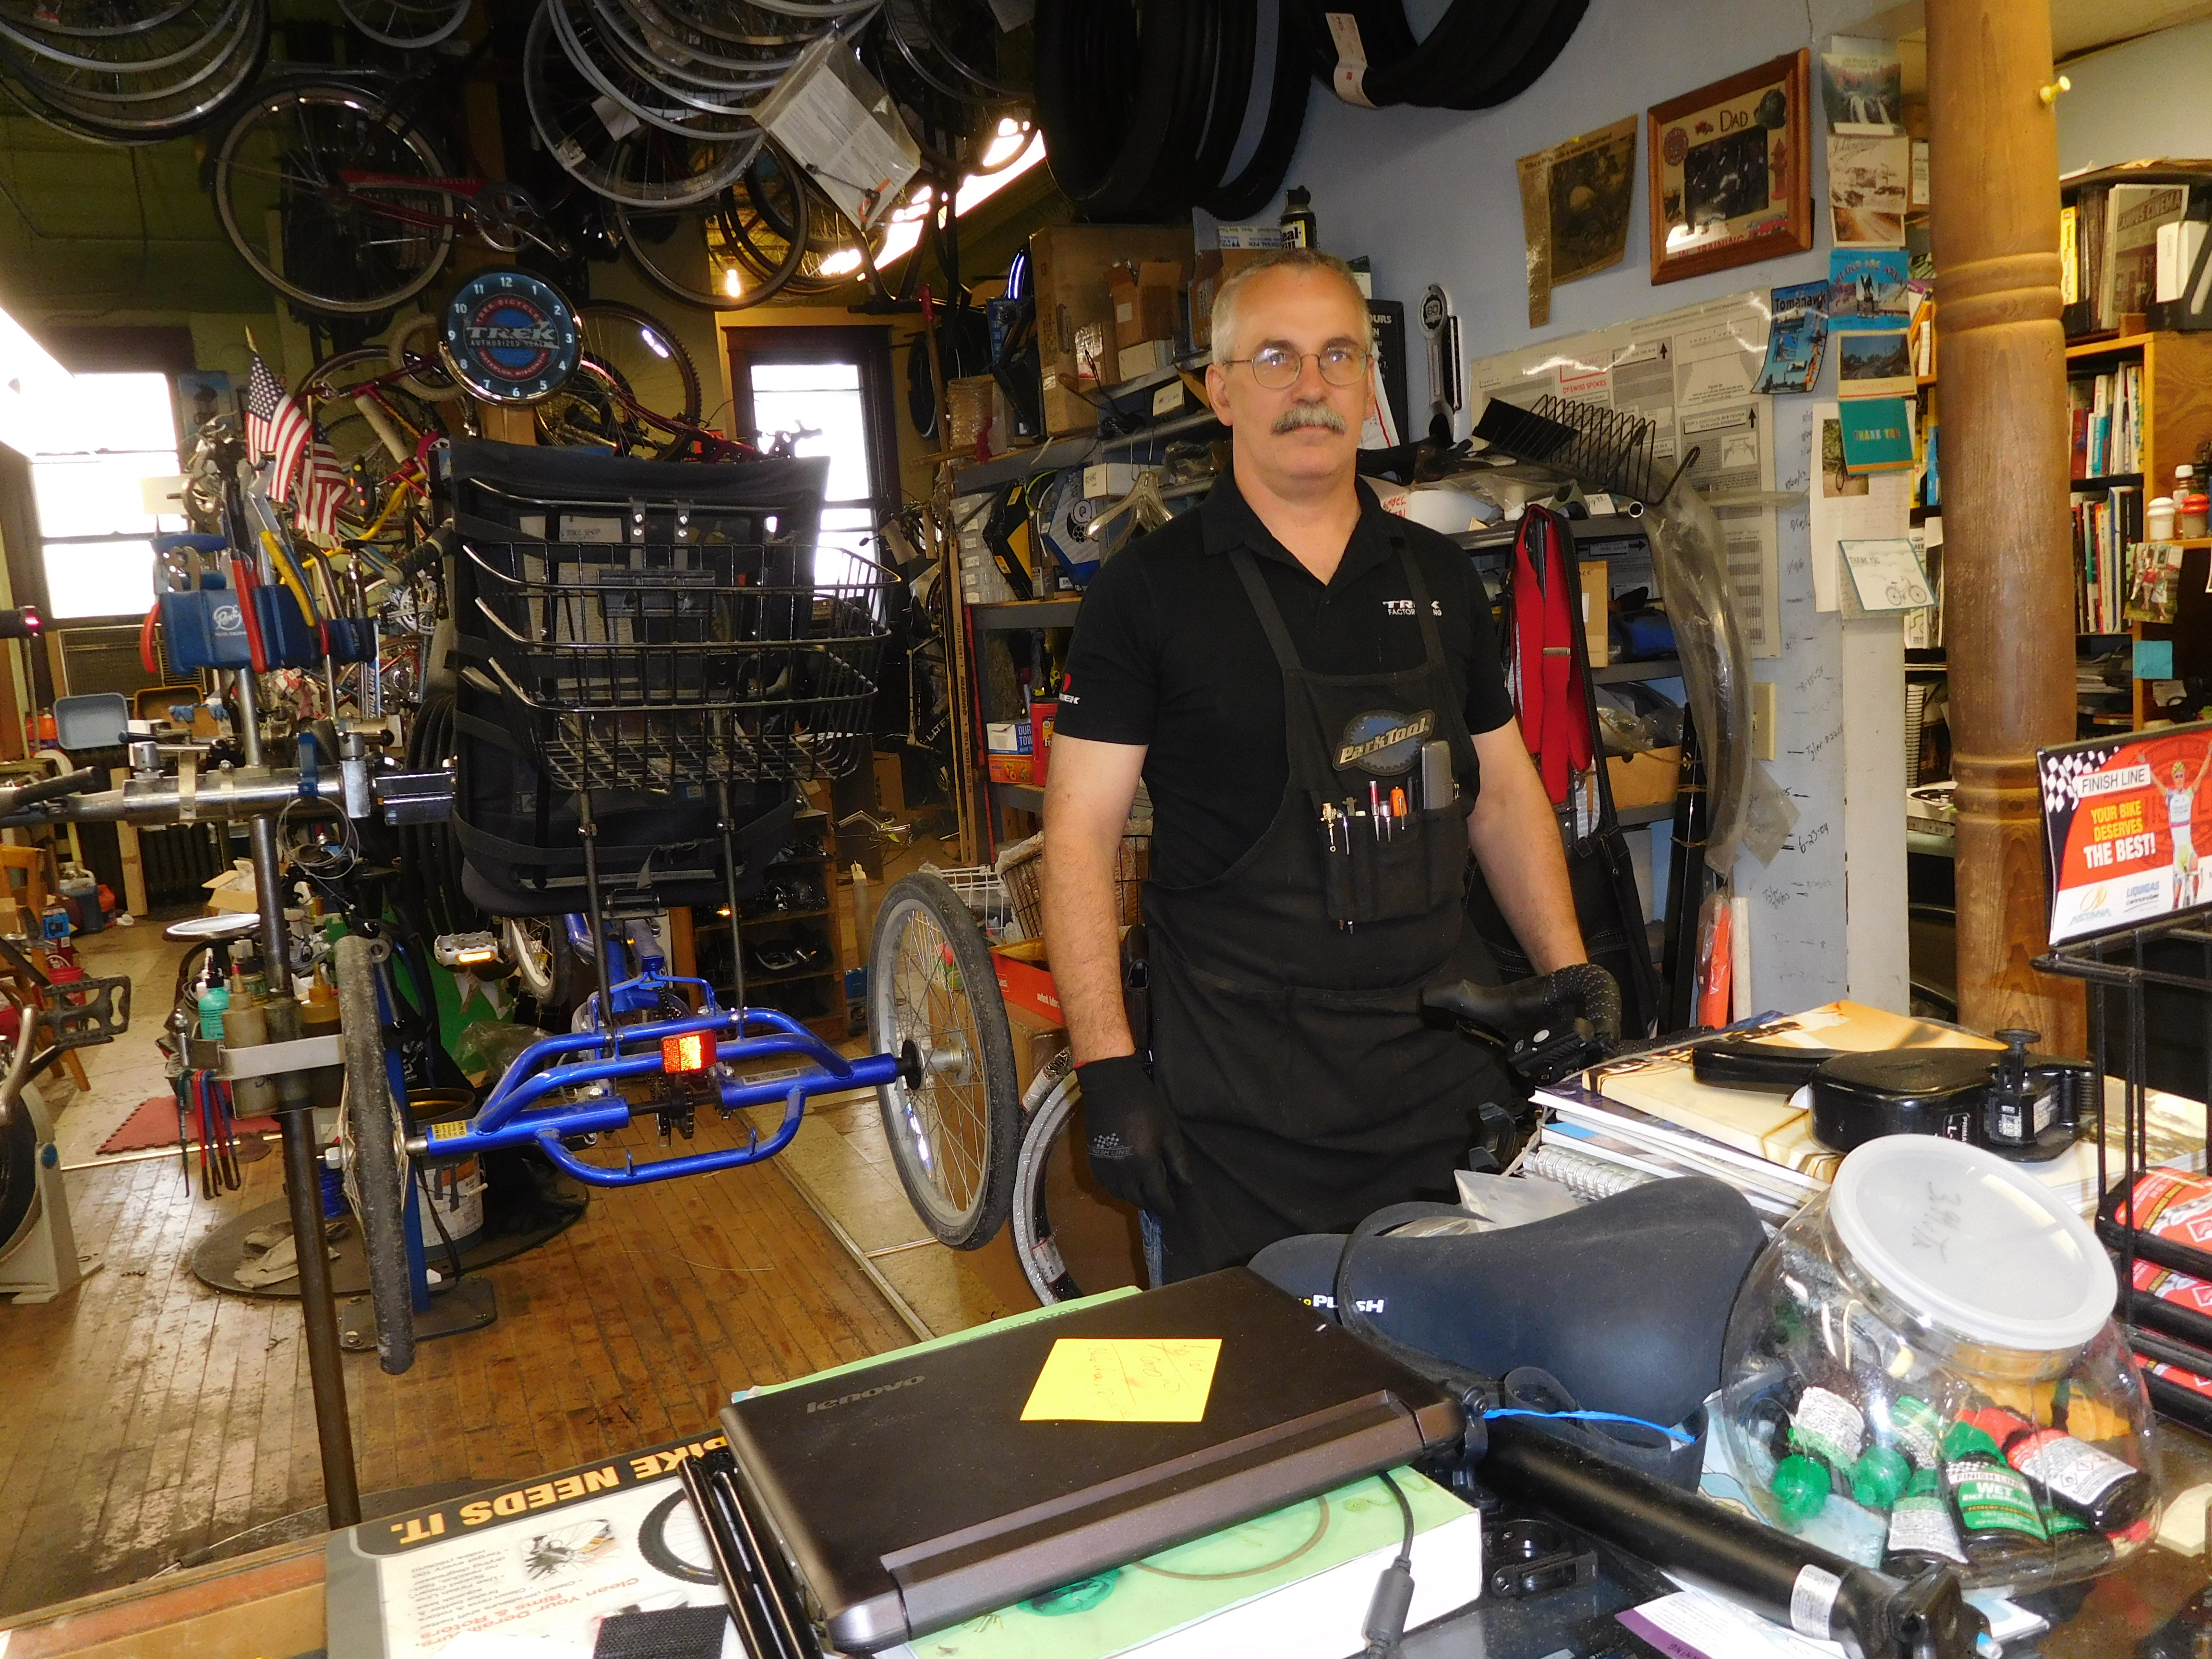 Mike of Mikes Bike Shop